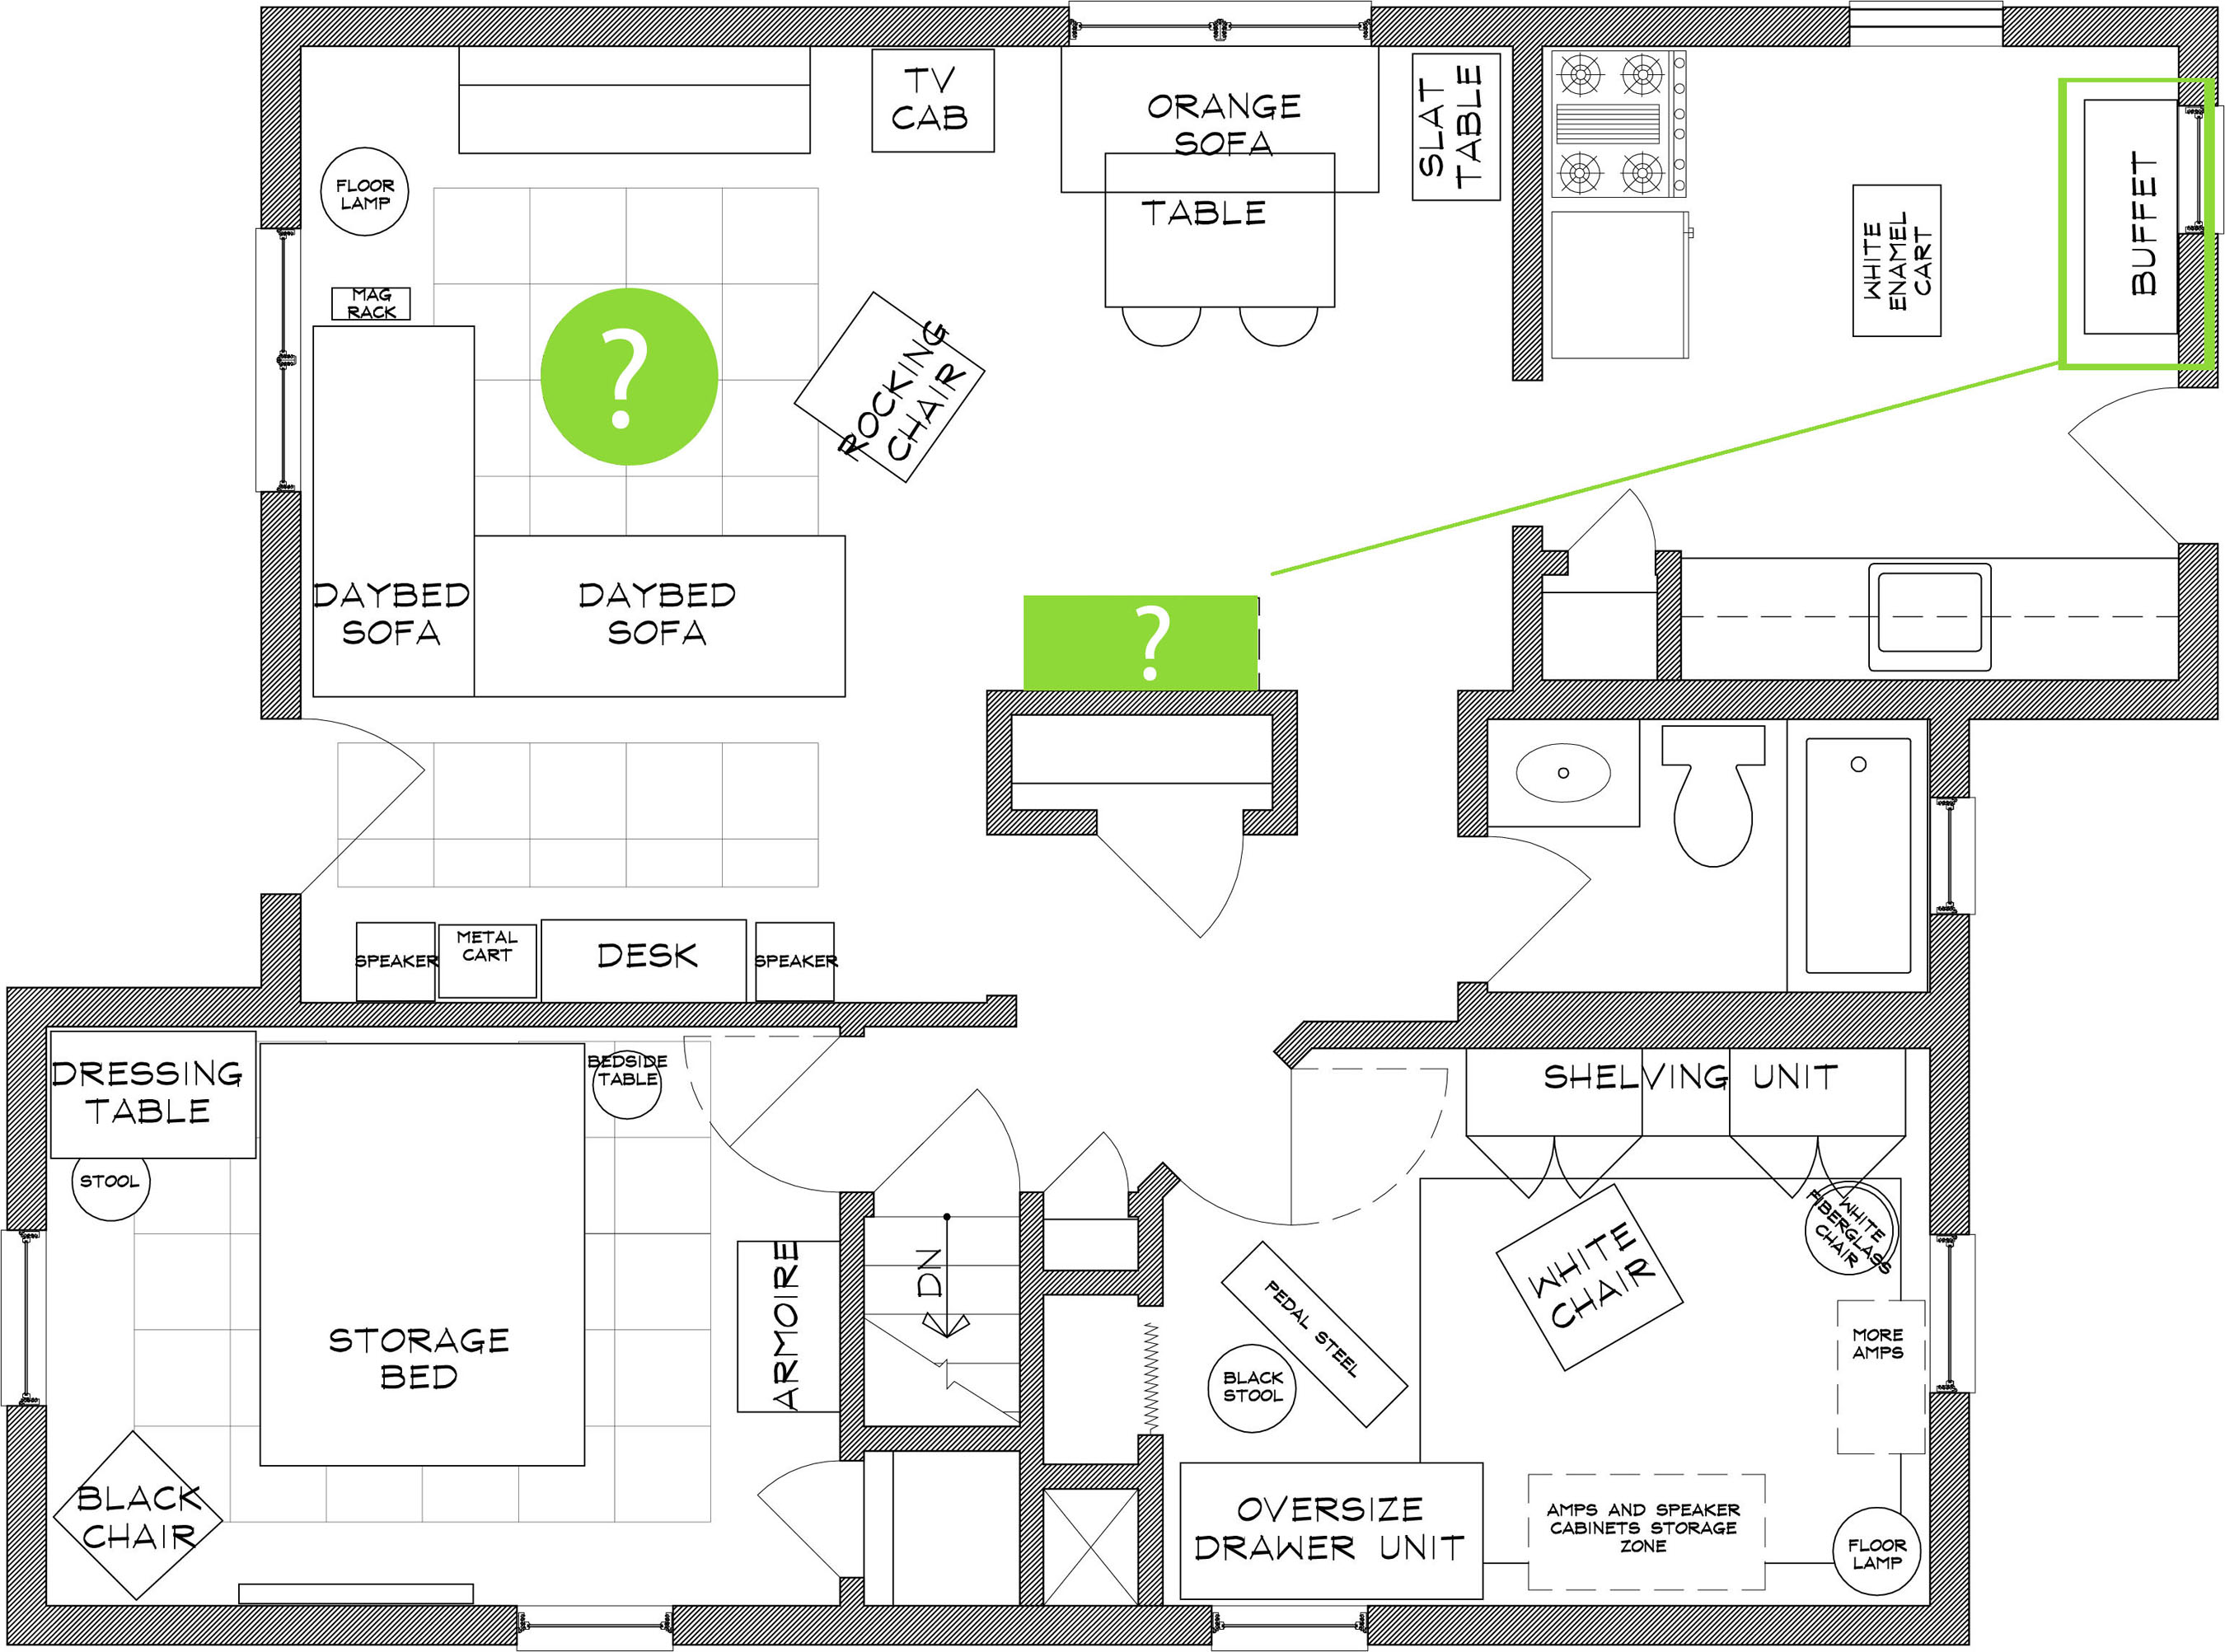 Autocad floor plan living analog for Cad floor plans